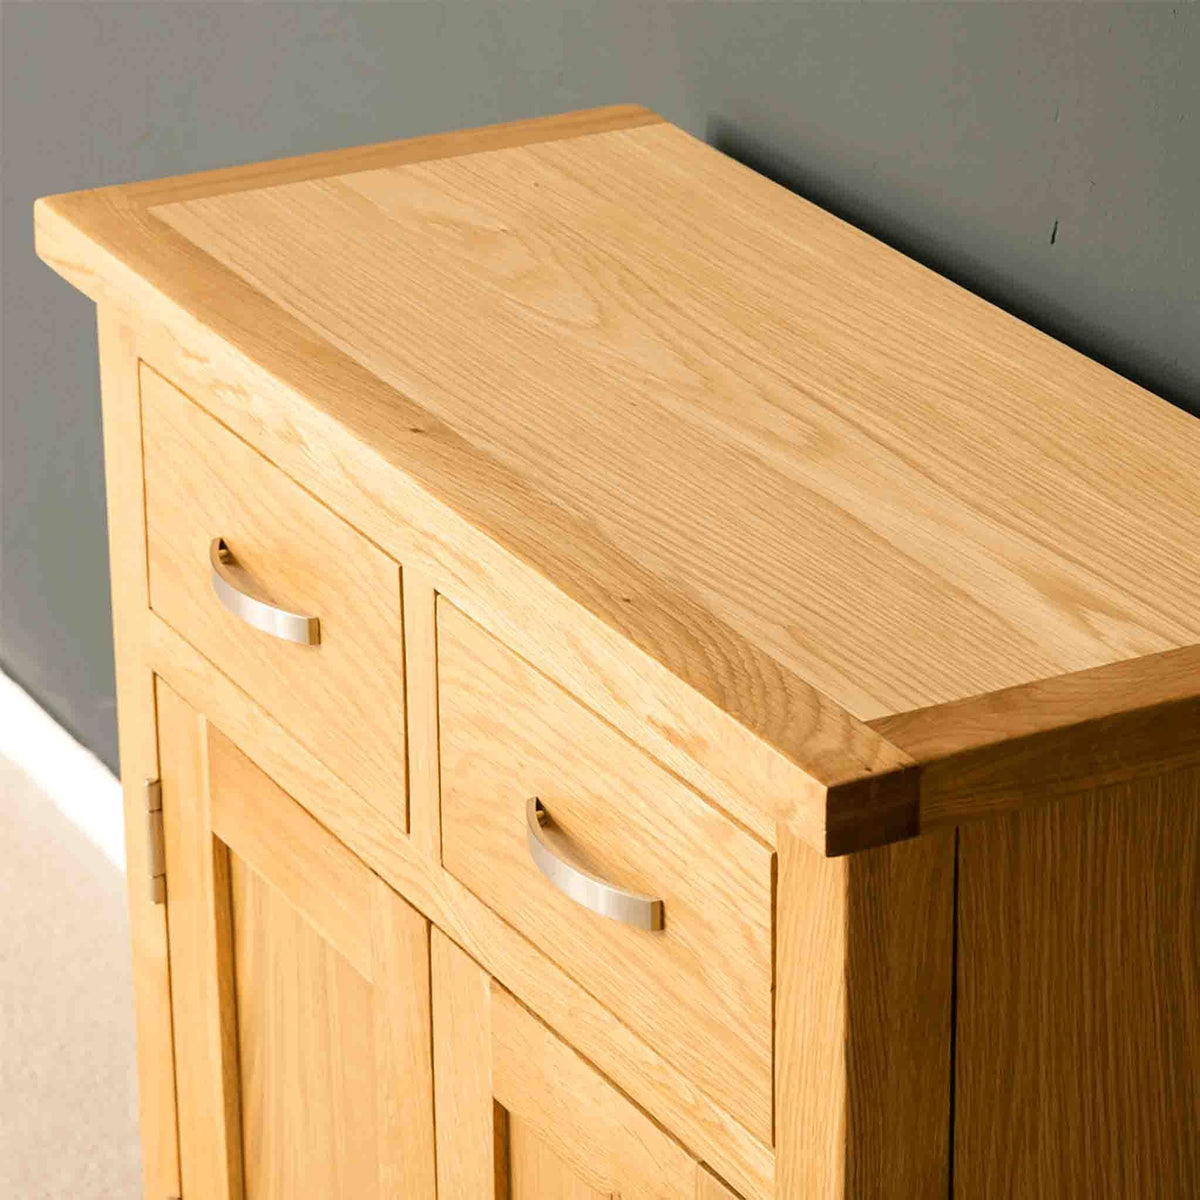 London Oak Mini Sideboard top surface.